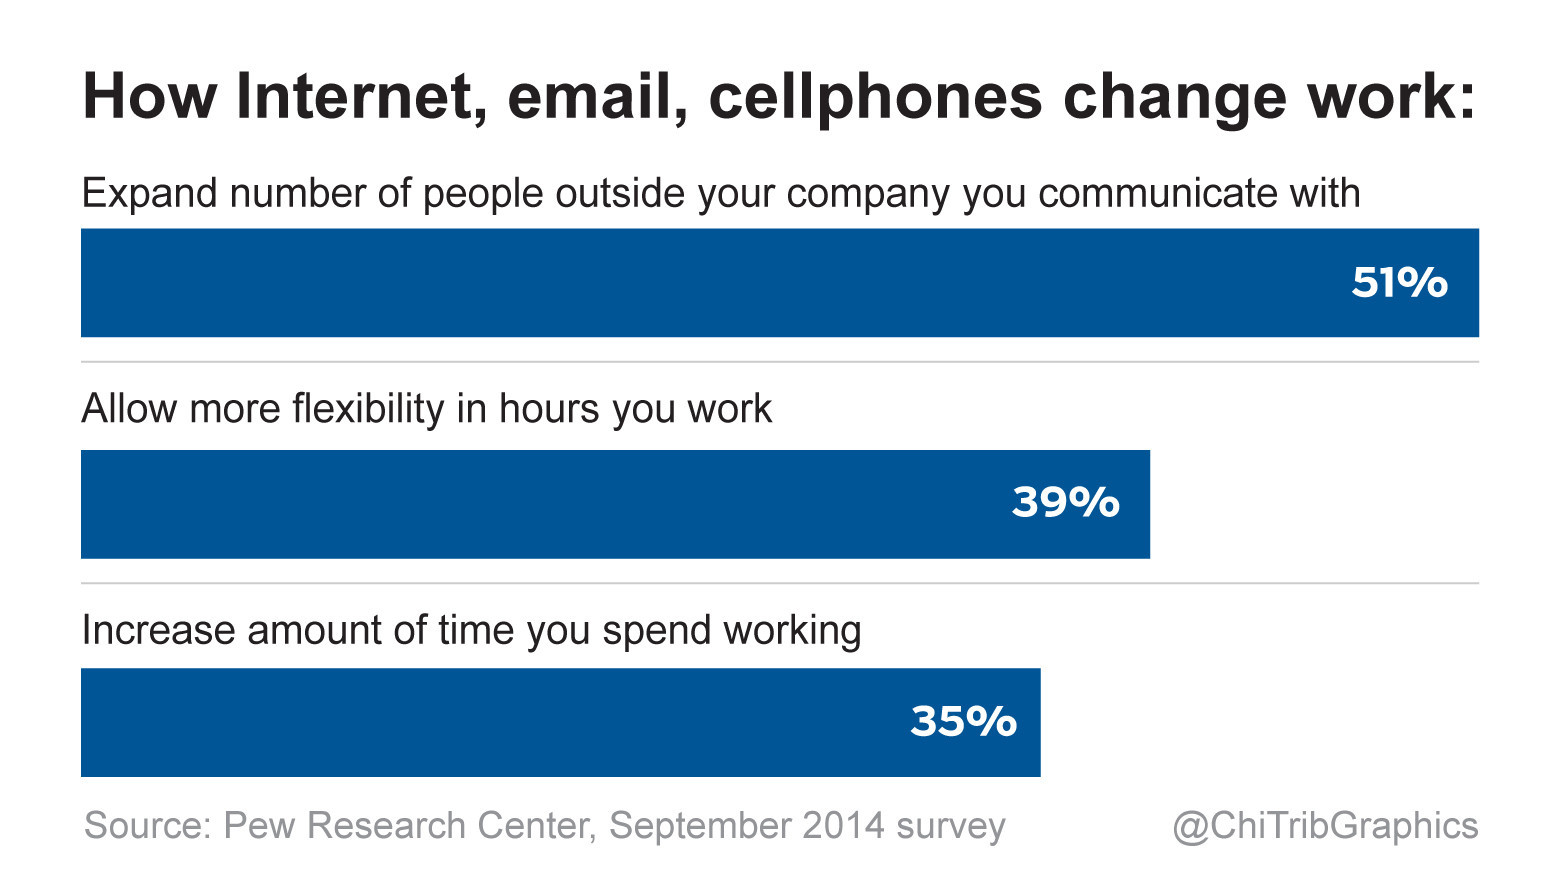 How To End An Argument Should Workers Get Overtime For Answering Emails  After Hours? Chicago